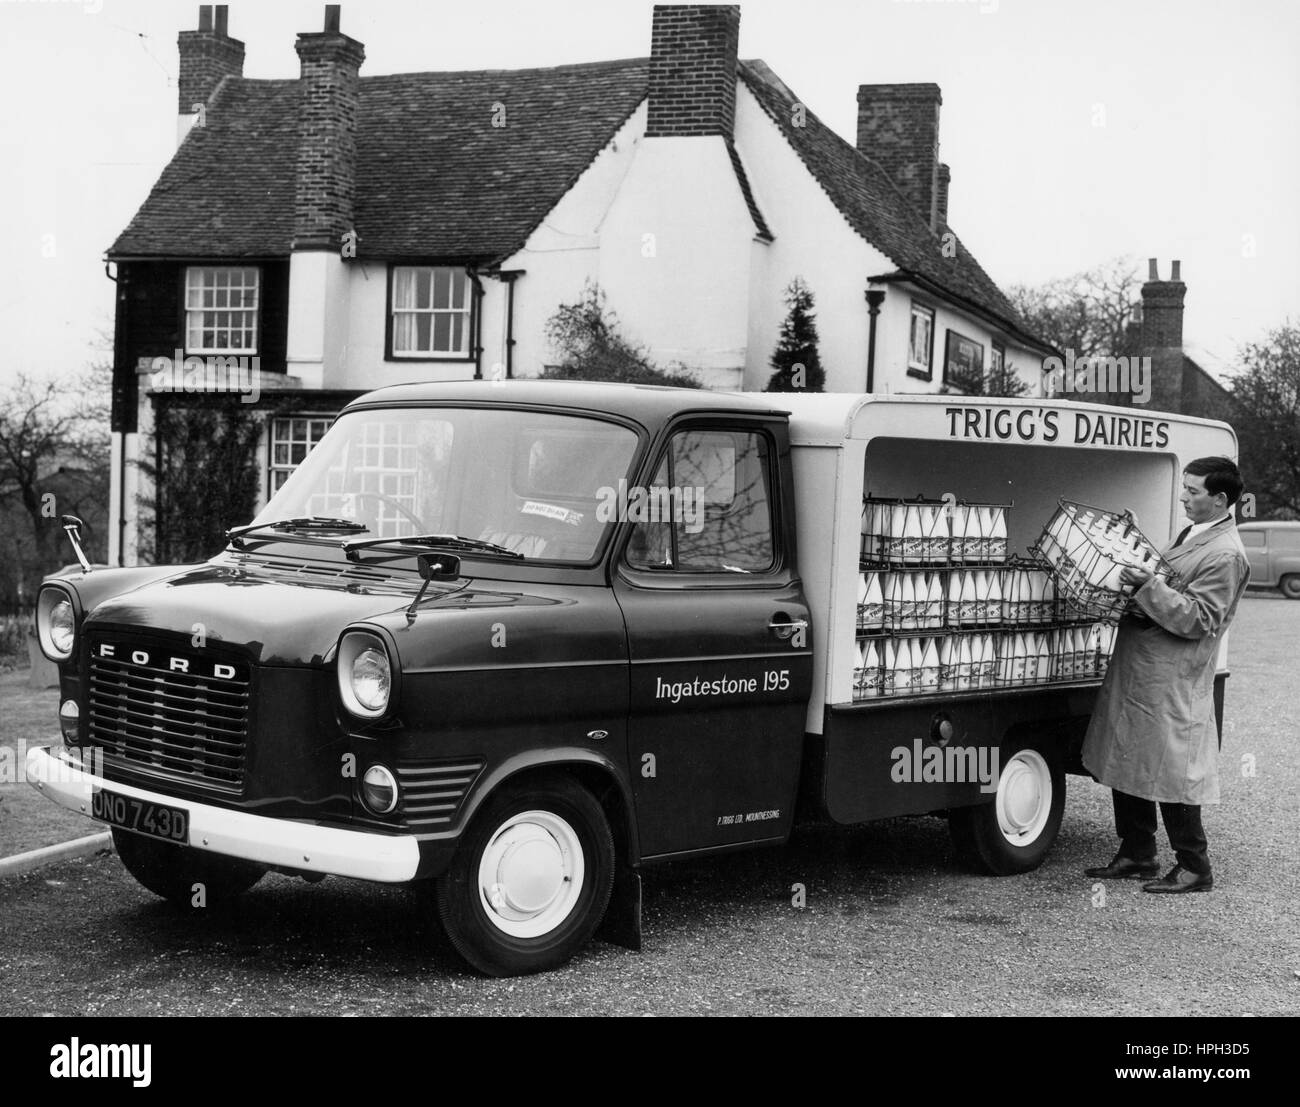 Milk Float Stock Photos Amp Milk Float Stock Images Alamy